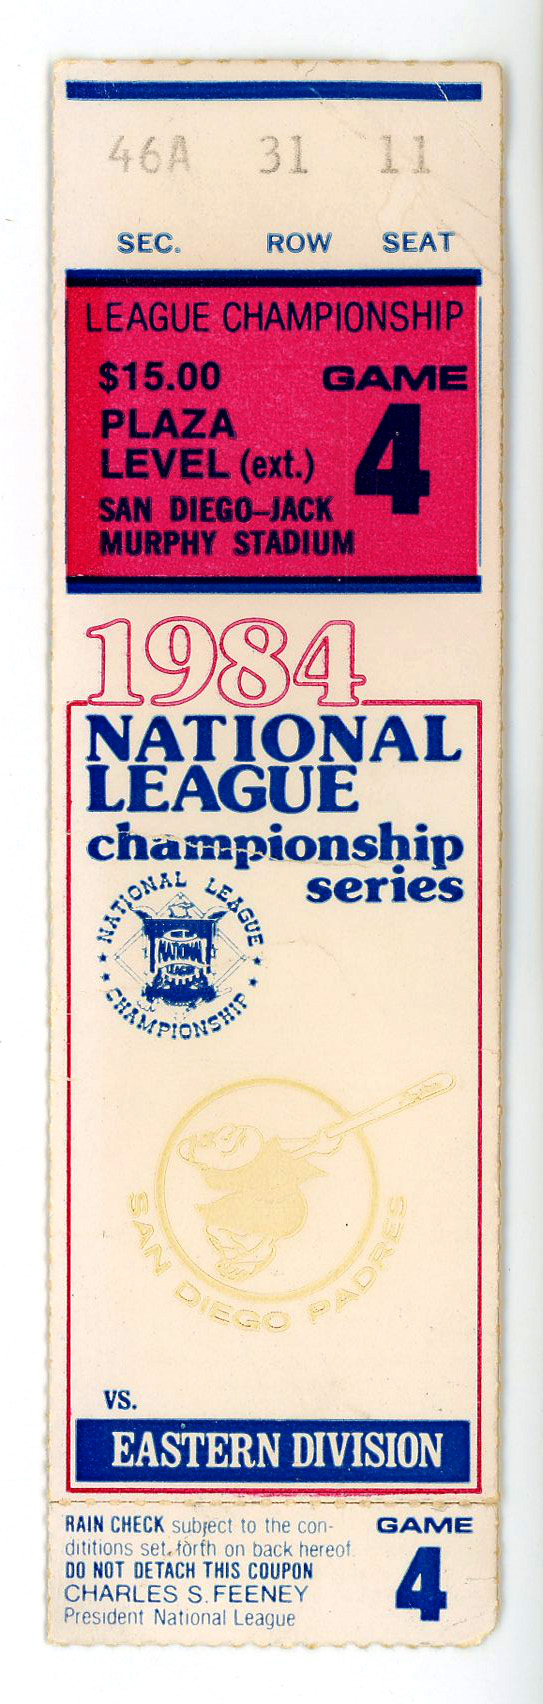 14. National League Championship Game 4 Ticket 1984